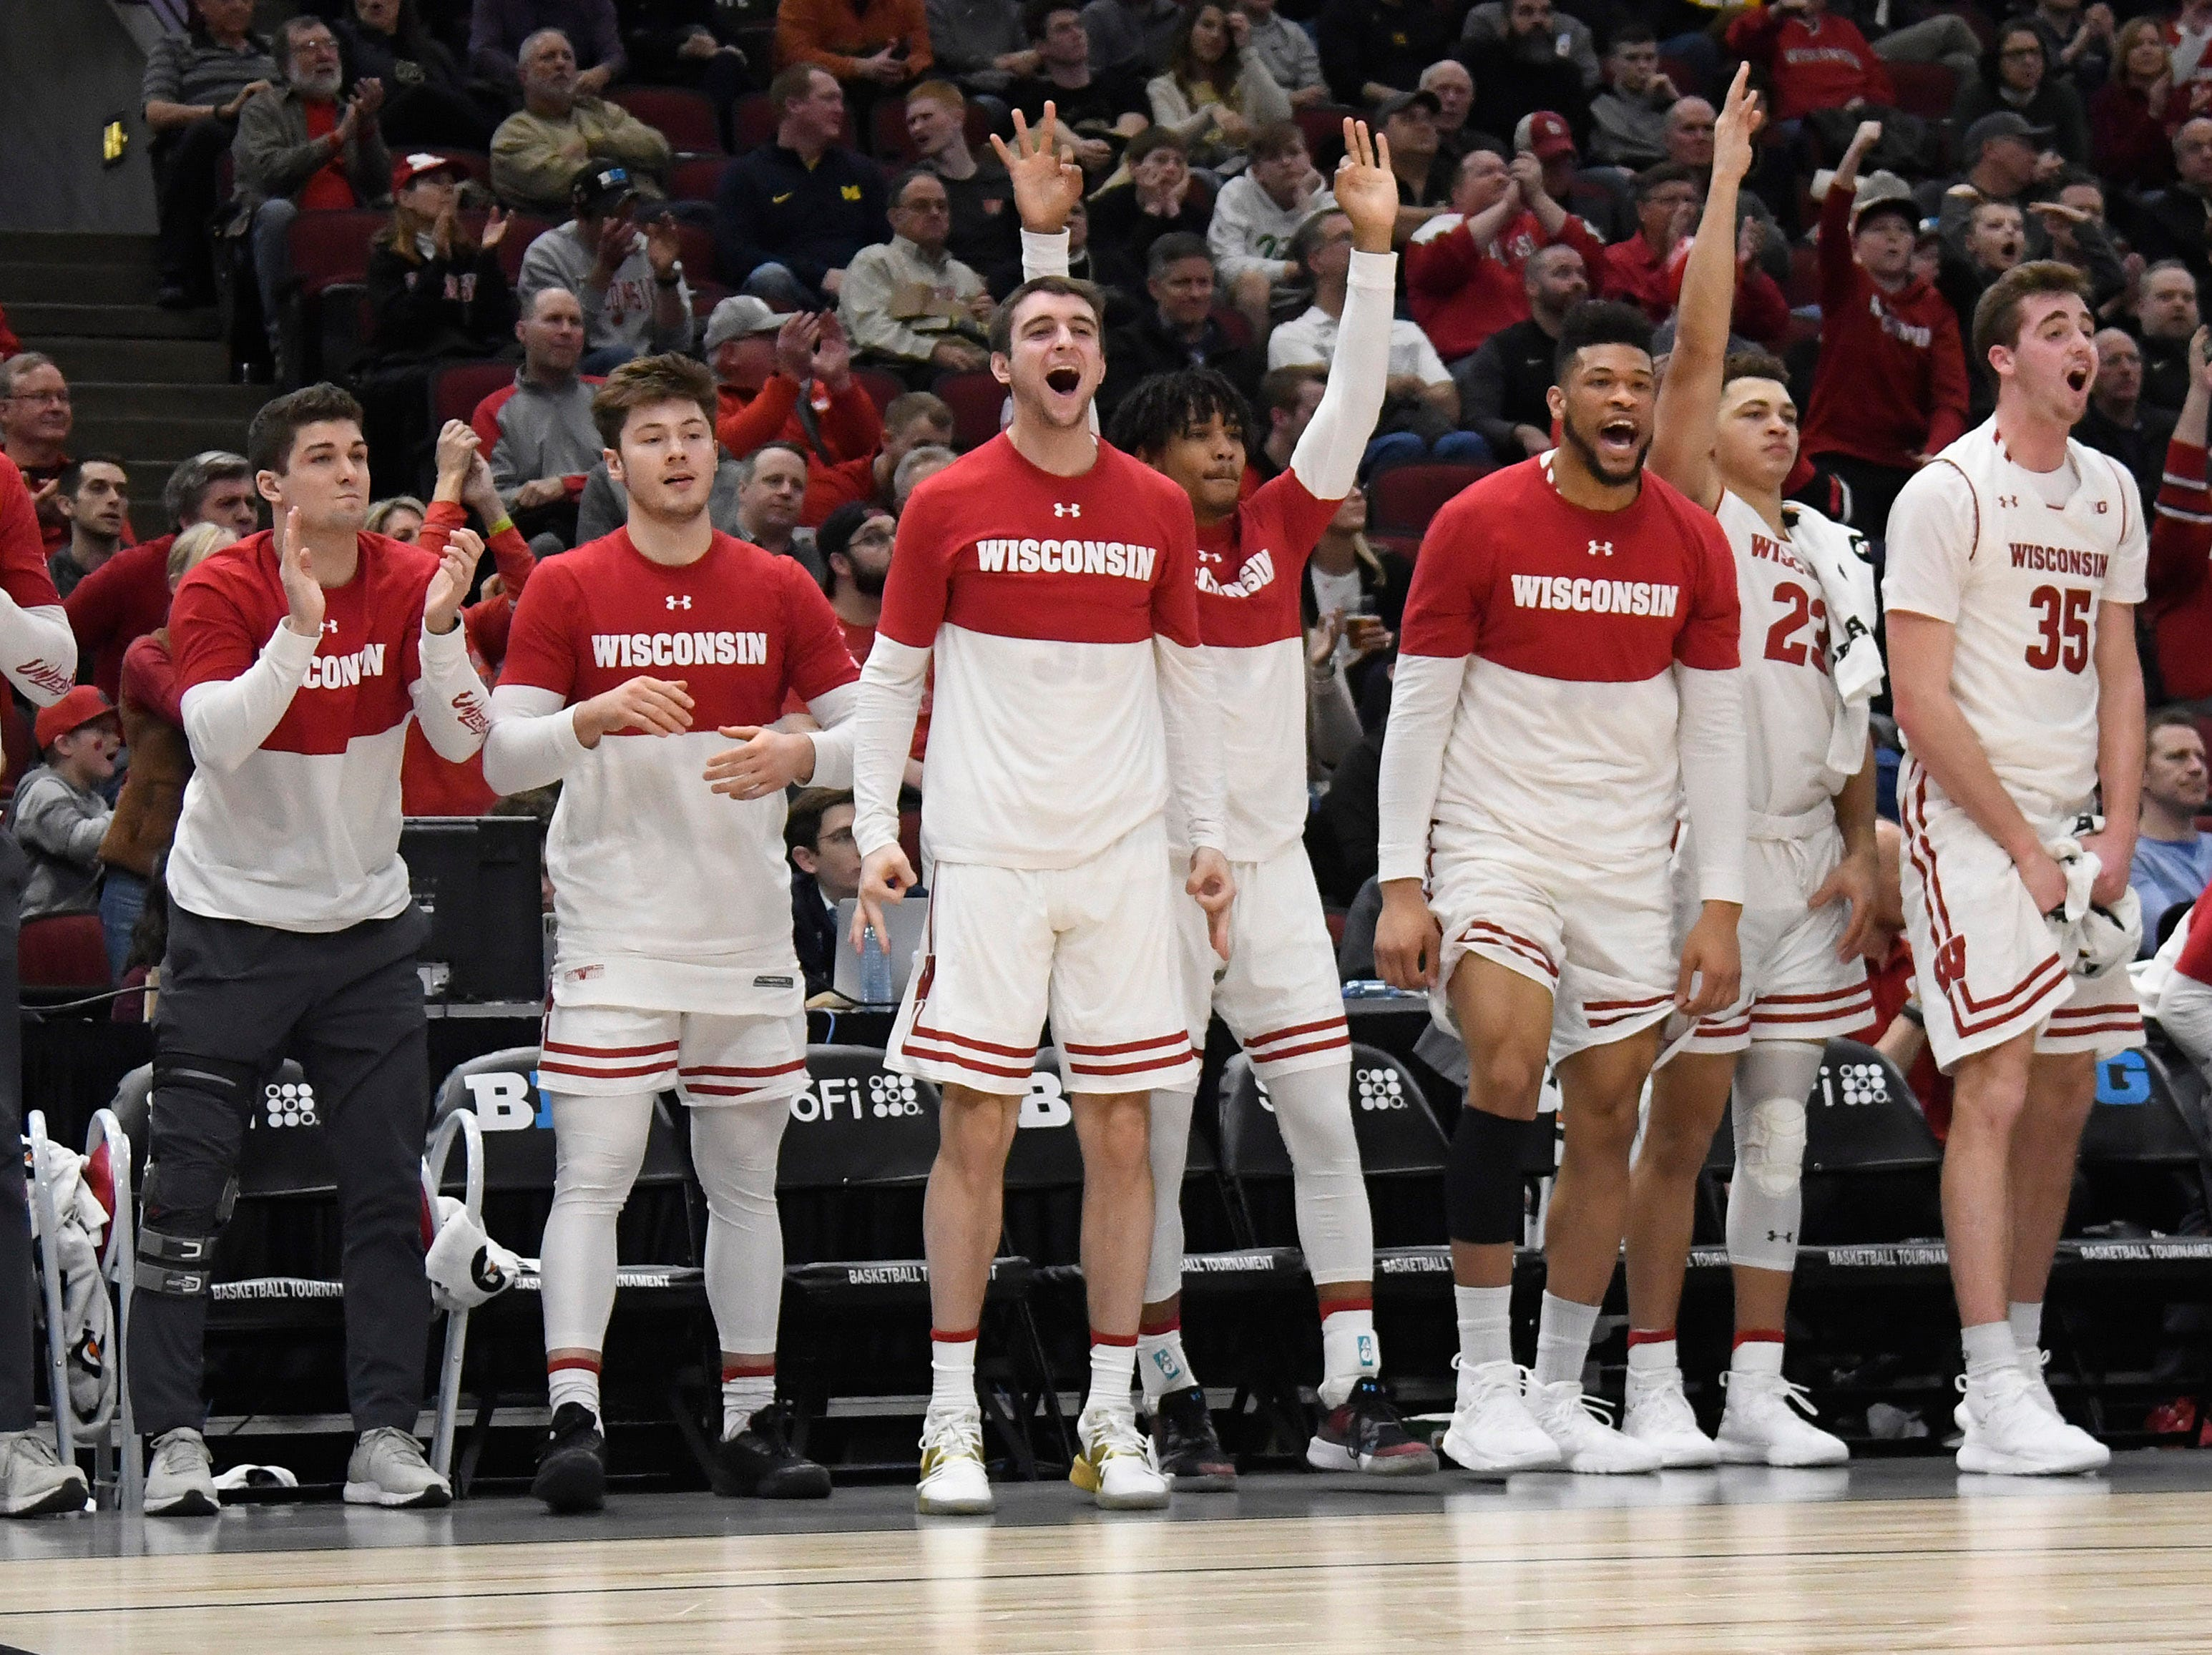 Wisconsin (23-10), No. 5 seed in South, at-large bid out of Big Ten Conference